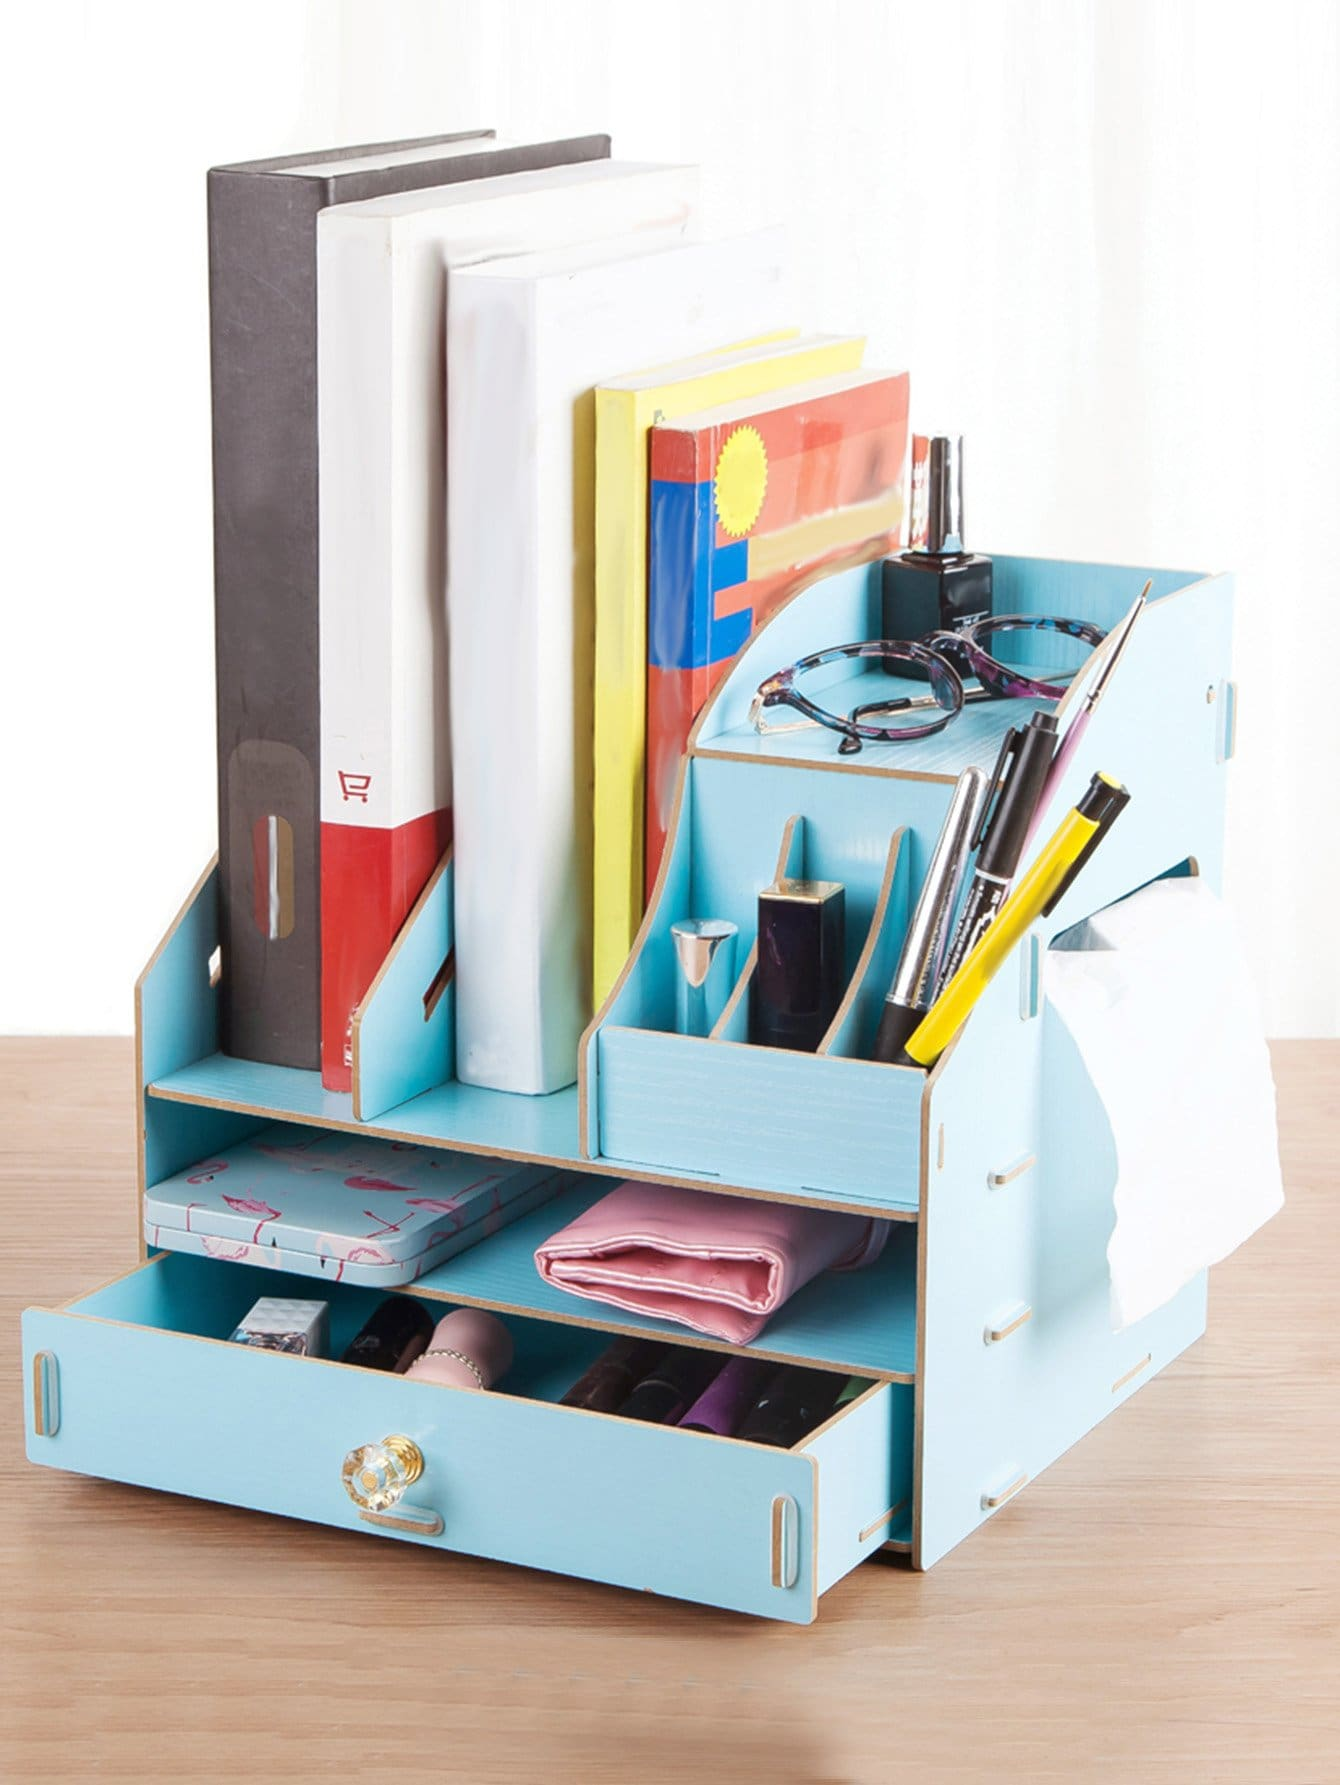 Compartment Desk Organizer With Drawer kitcox01761easaf3274bl value kit safco one drawer hospitality organizer saf3274bl and clorox disinfecting wipes cox01761ea